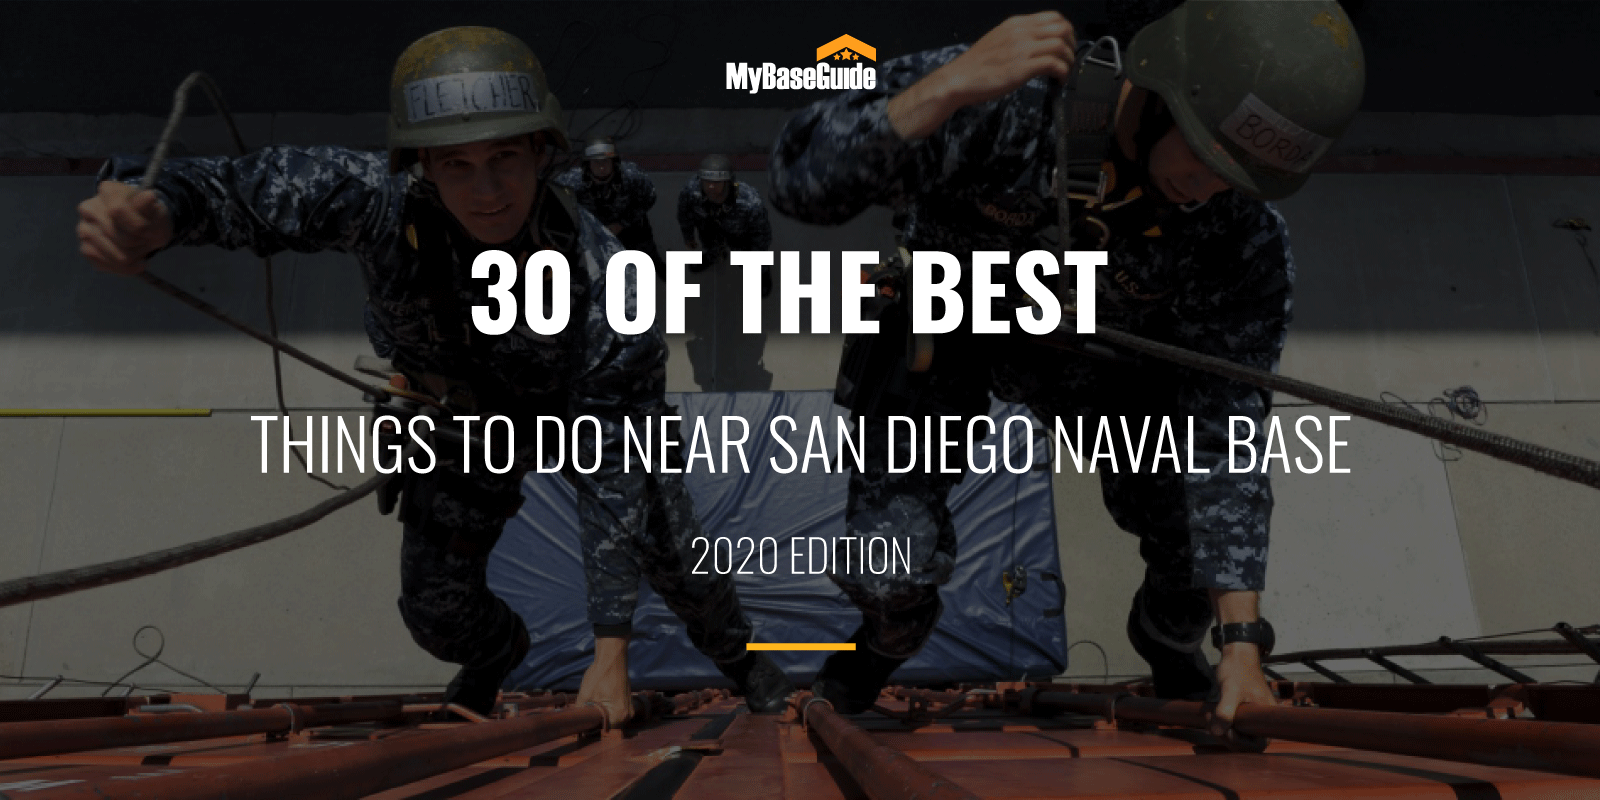 30 Of the Best Things to Do Near San Diego Naval Base